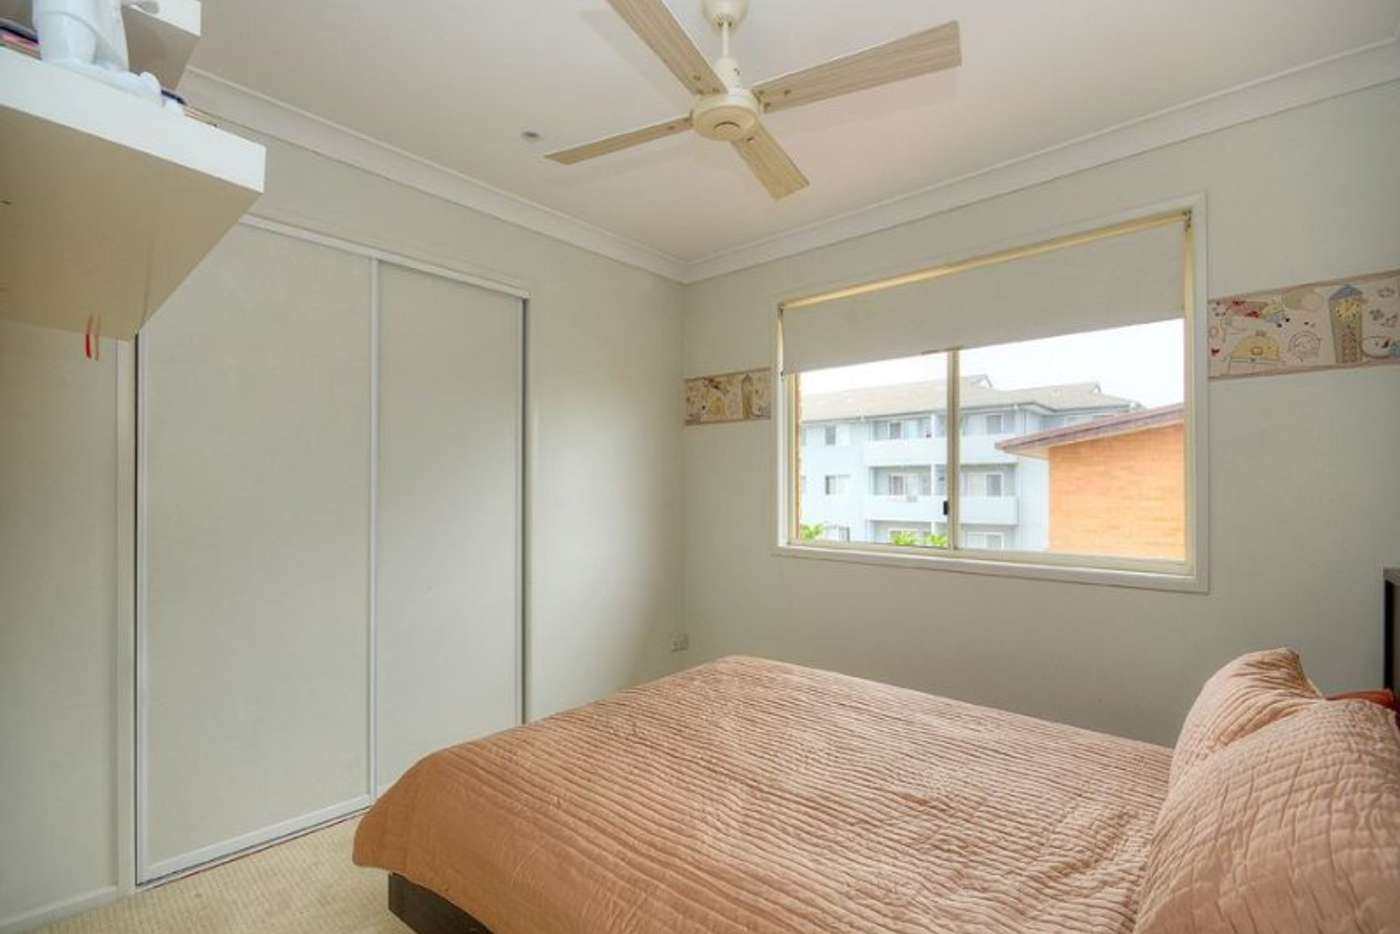 Sixth view of Homely unit listing, 2/25 Loder Street, Biggera Waters QLD 4216